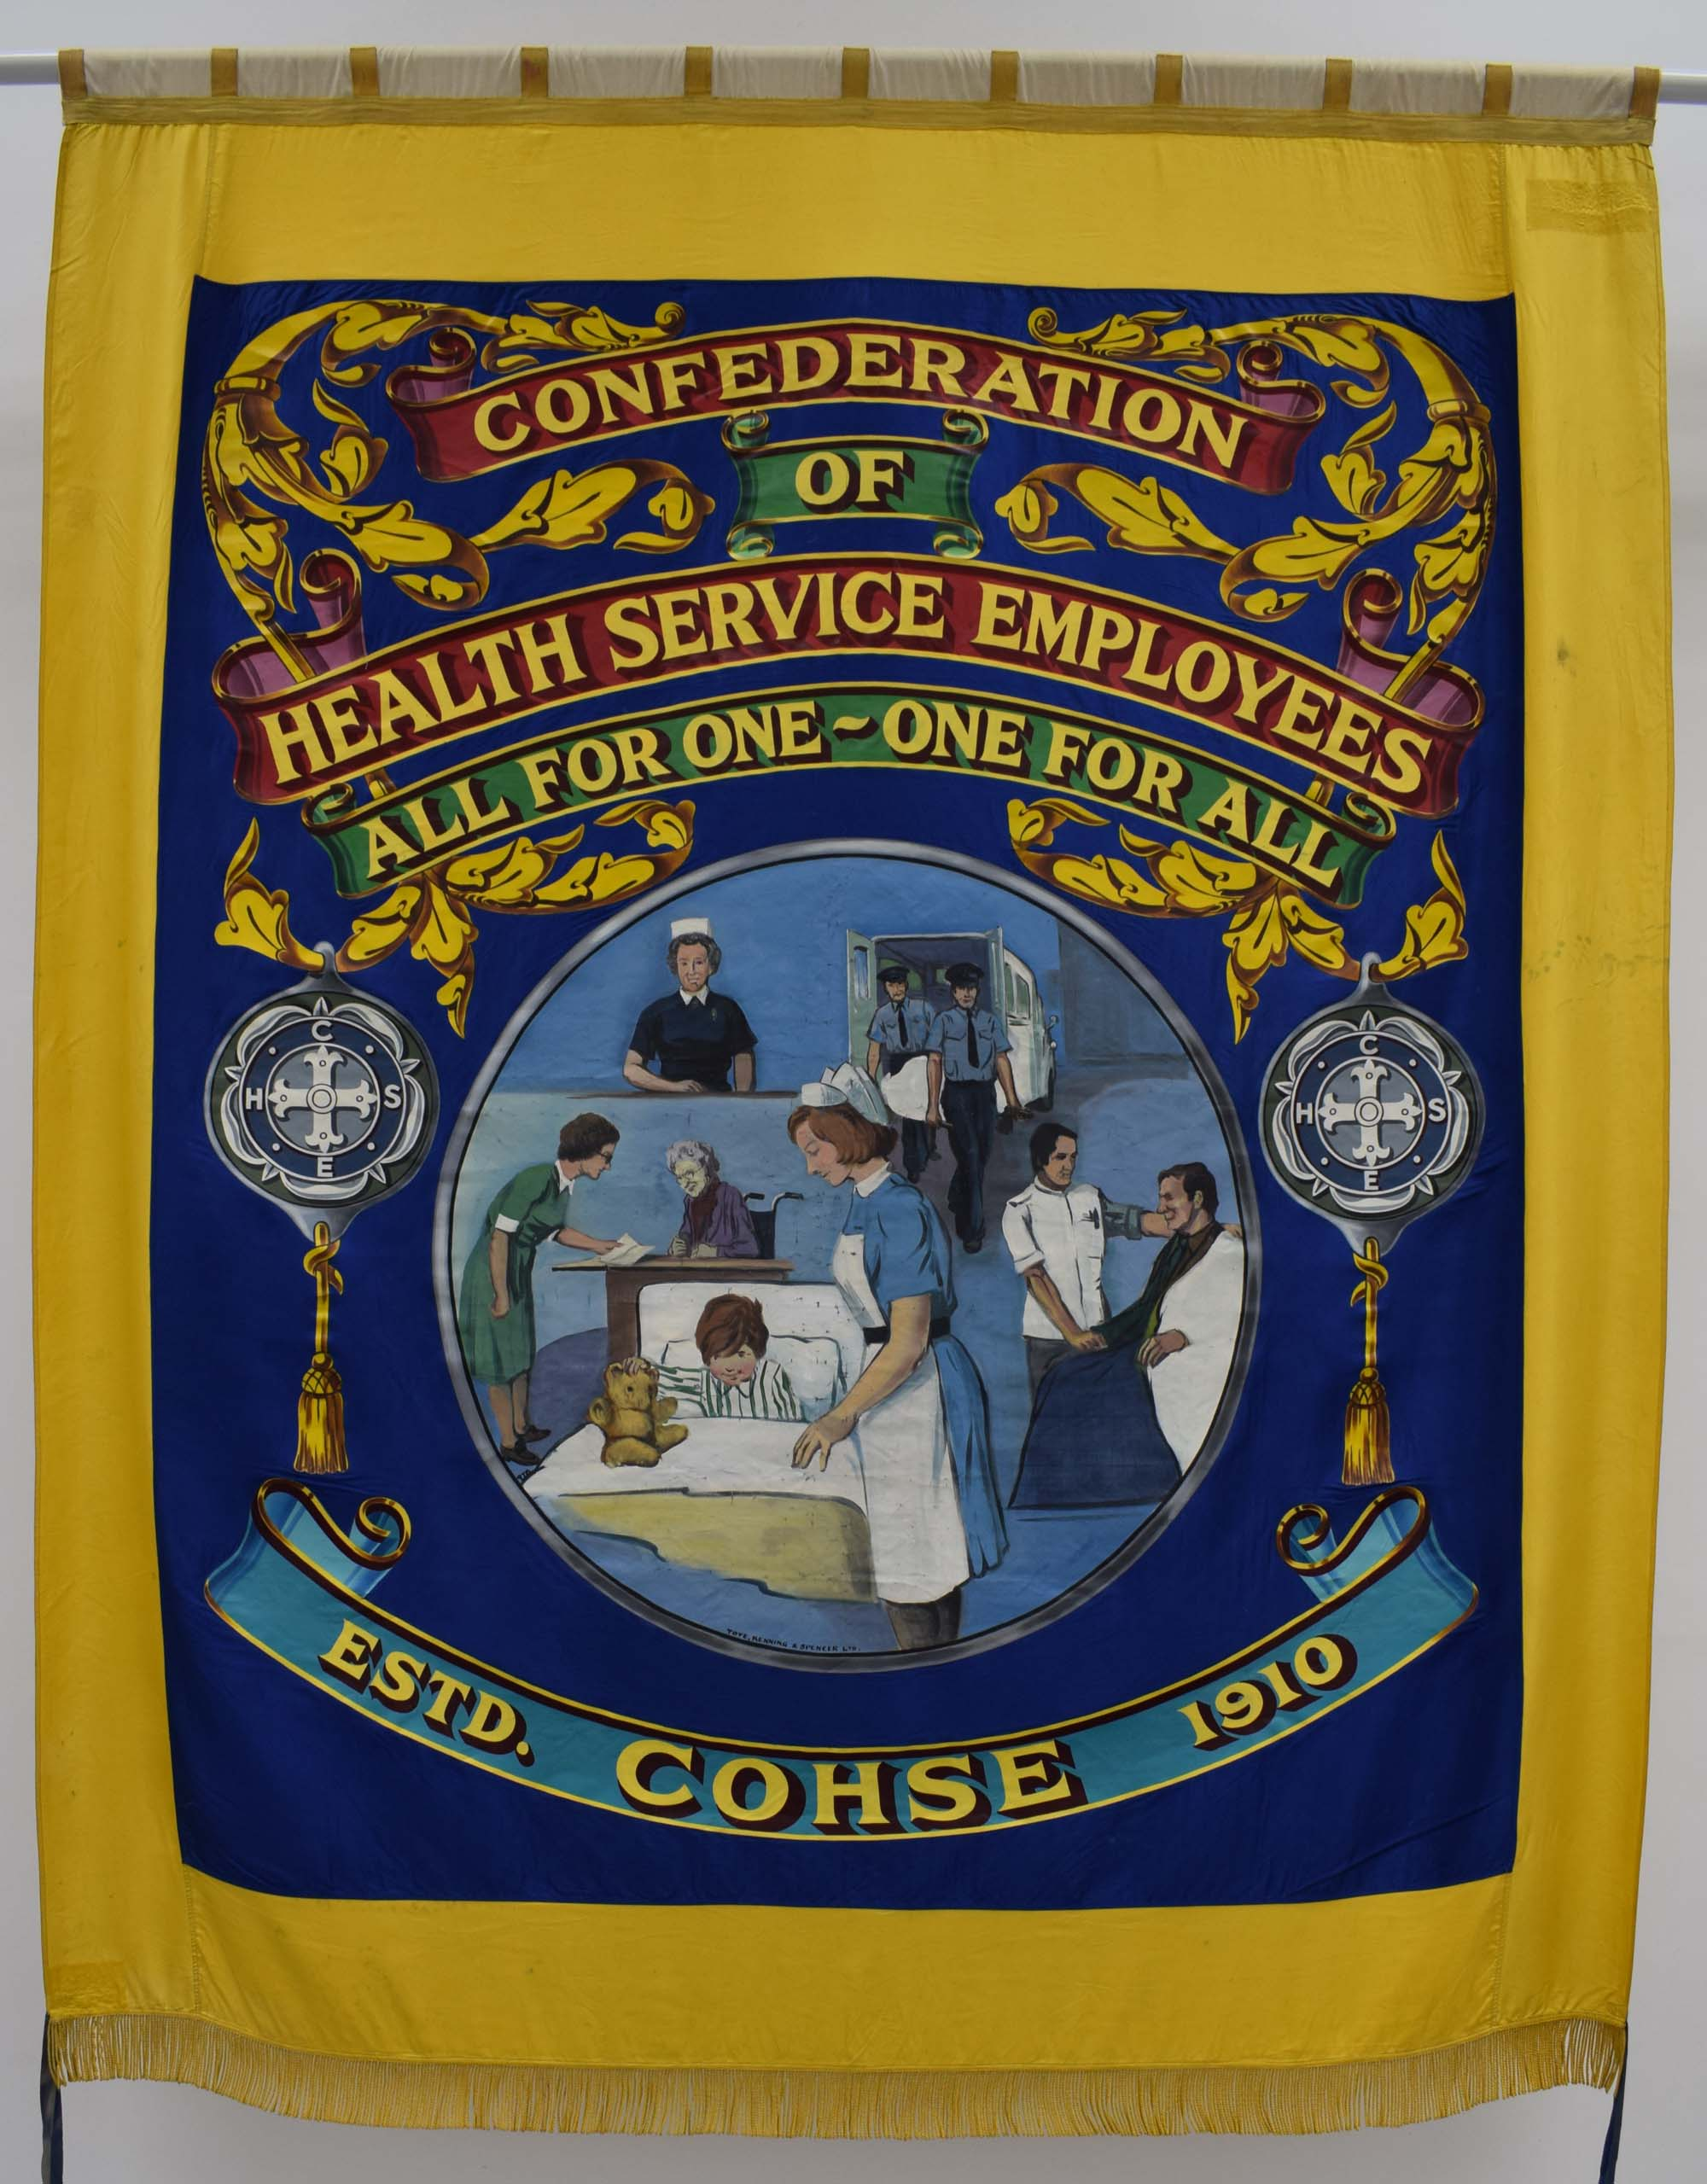 a banner for the COHSE Union with central panel depicting nurses, doctors and ambulance people